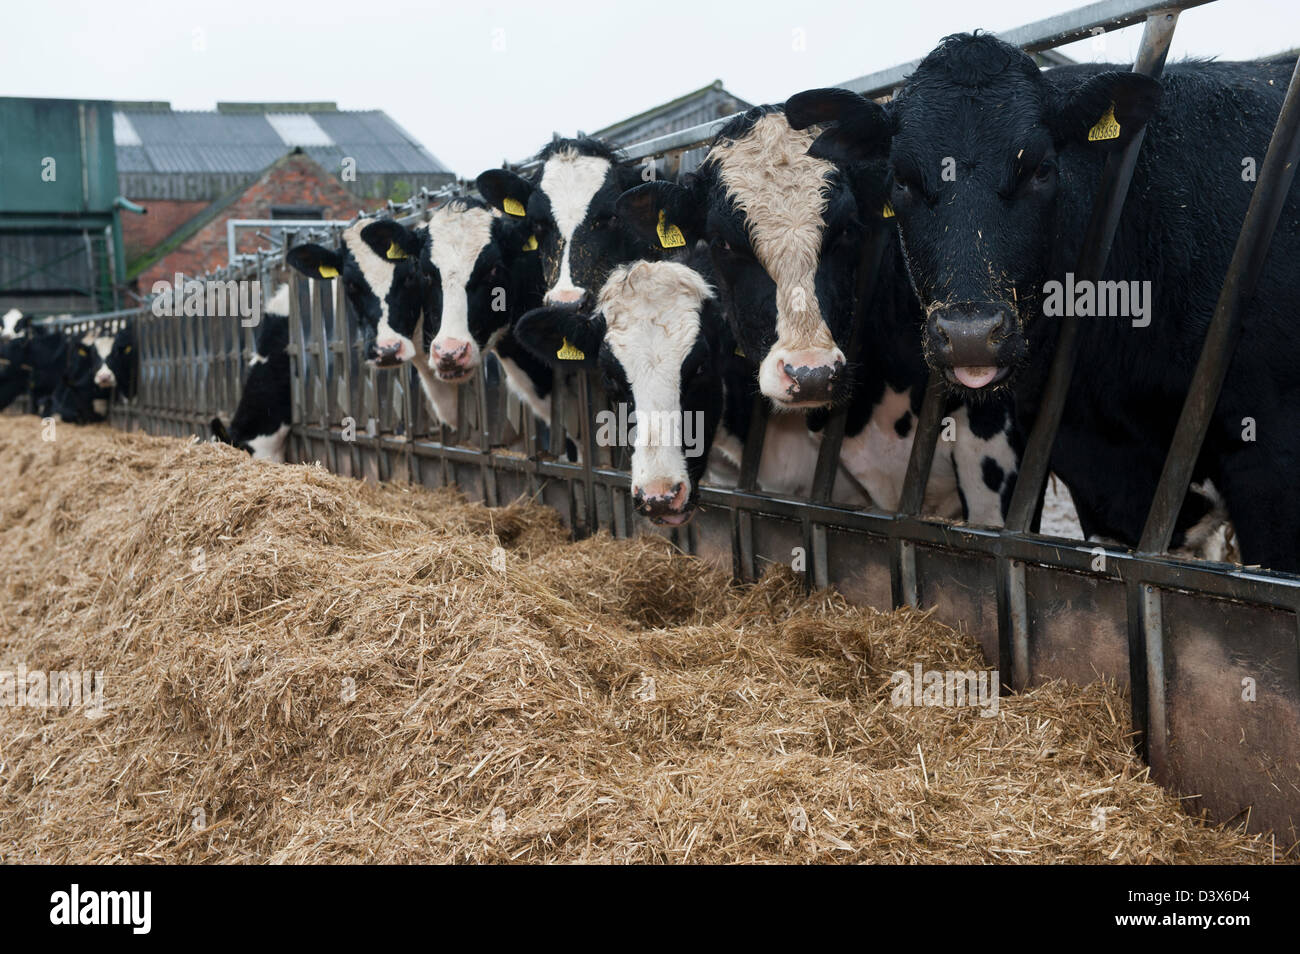 Cows Eating Silage Uk Stock Photos & Cows Eating Silage Uk Stock